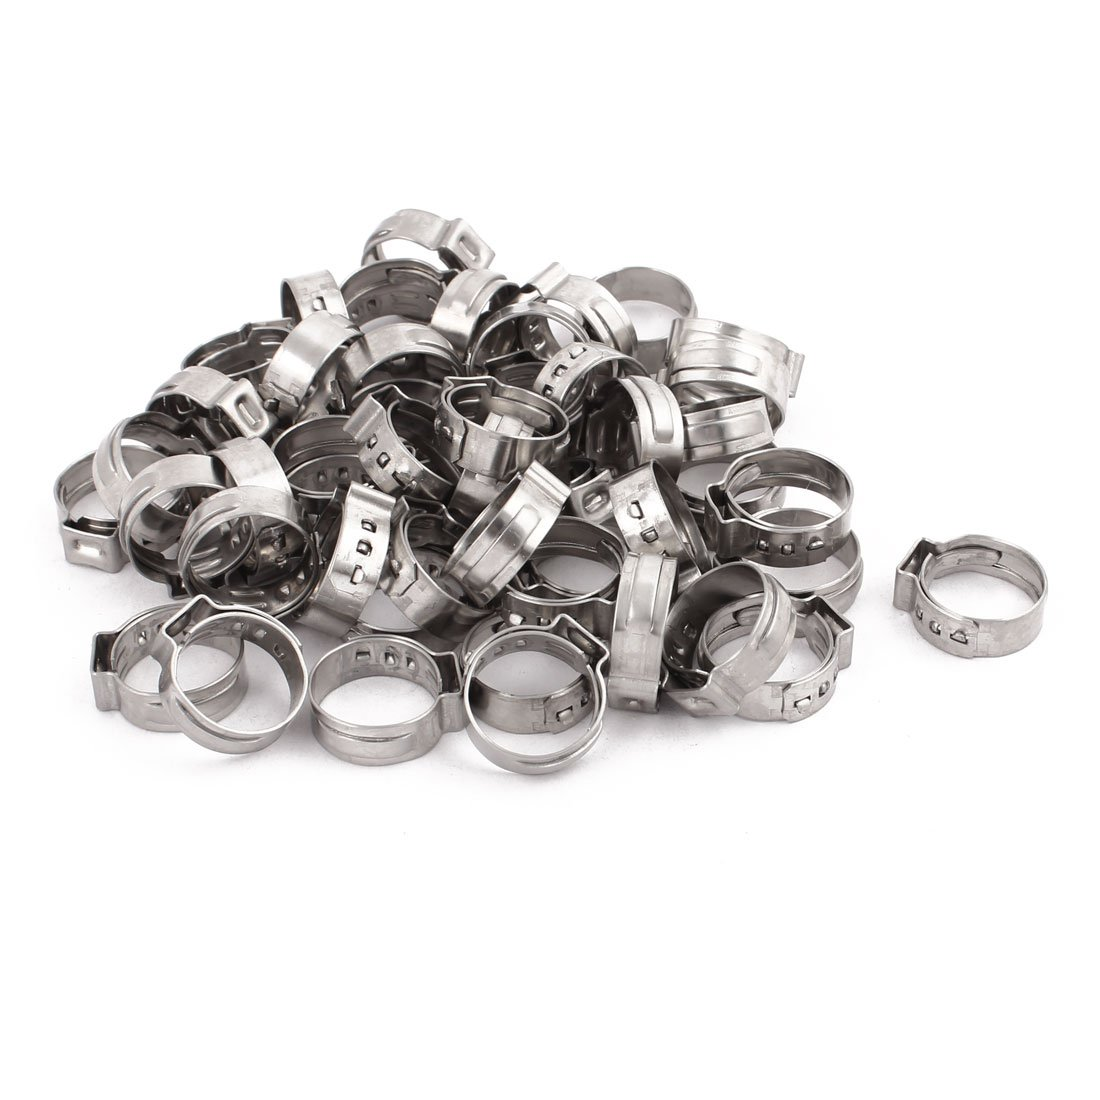 uxcell 14.3mm-16.8mm 304 Stainless Steel Adjustable Tube Hose Clamps Silver Tone 50pcs